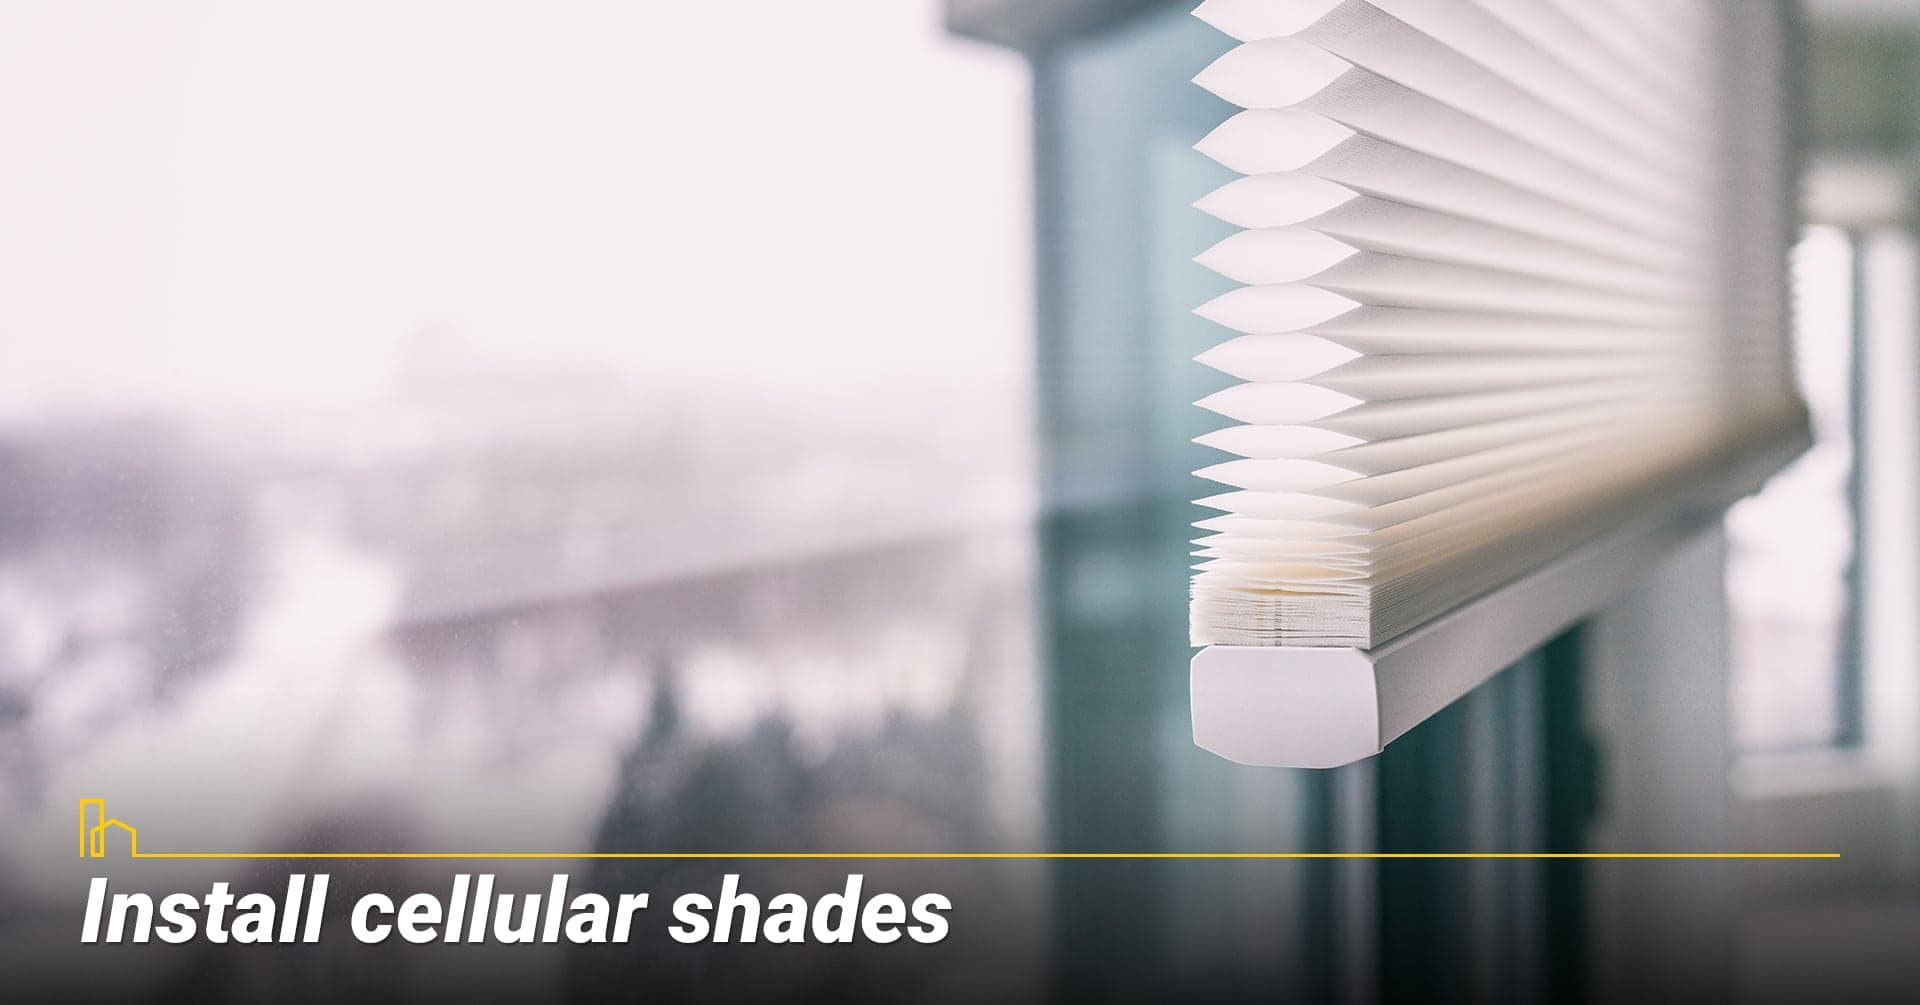 Install cellular shades, use shades as barrier